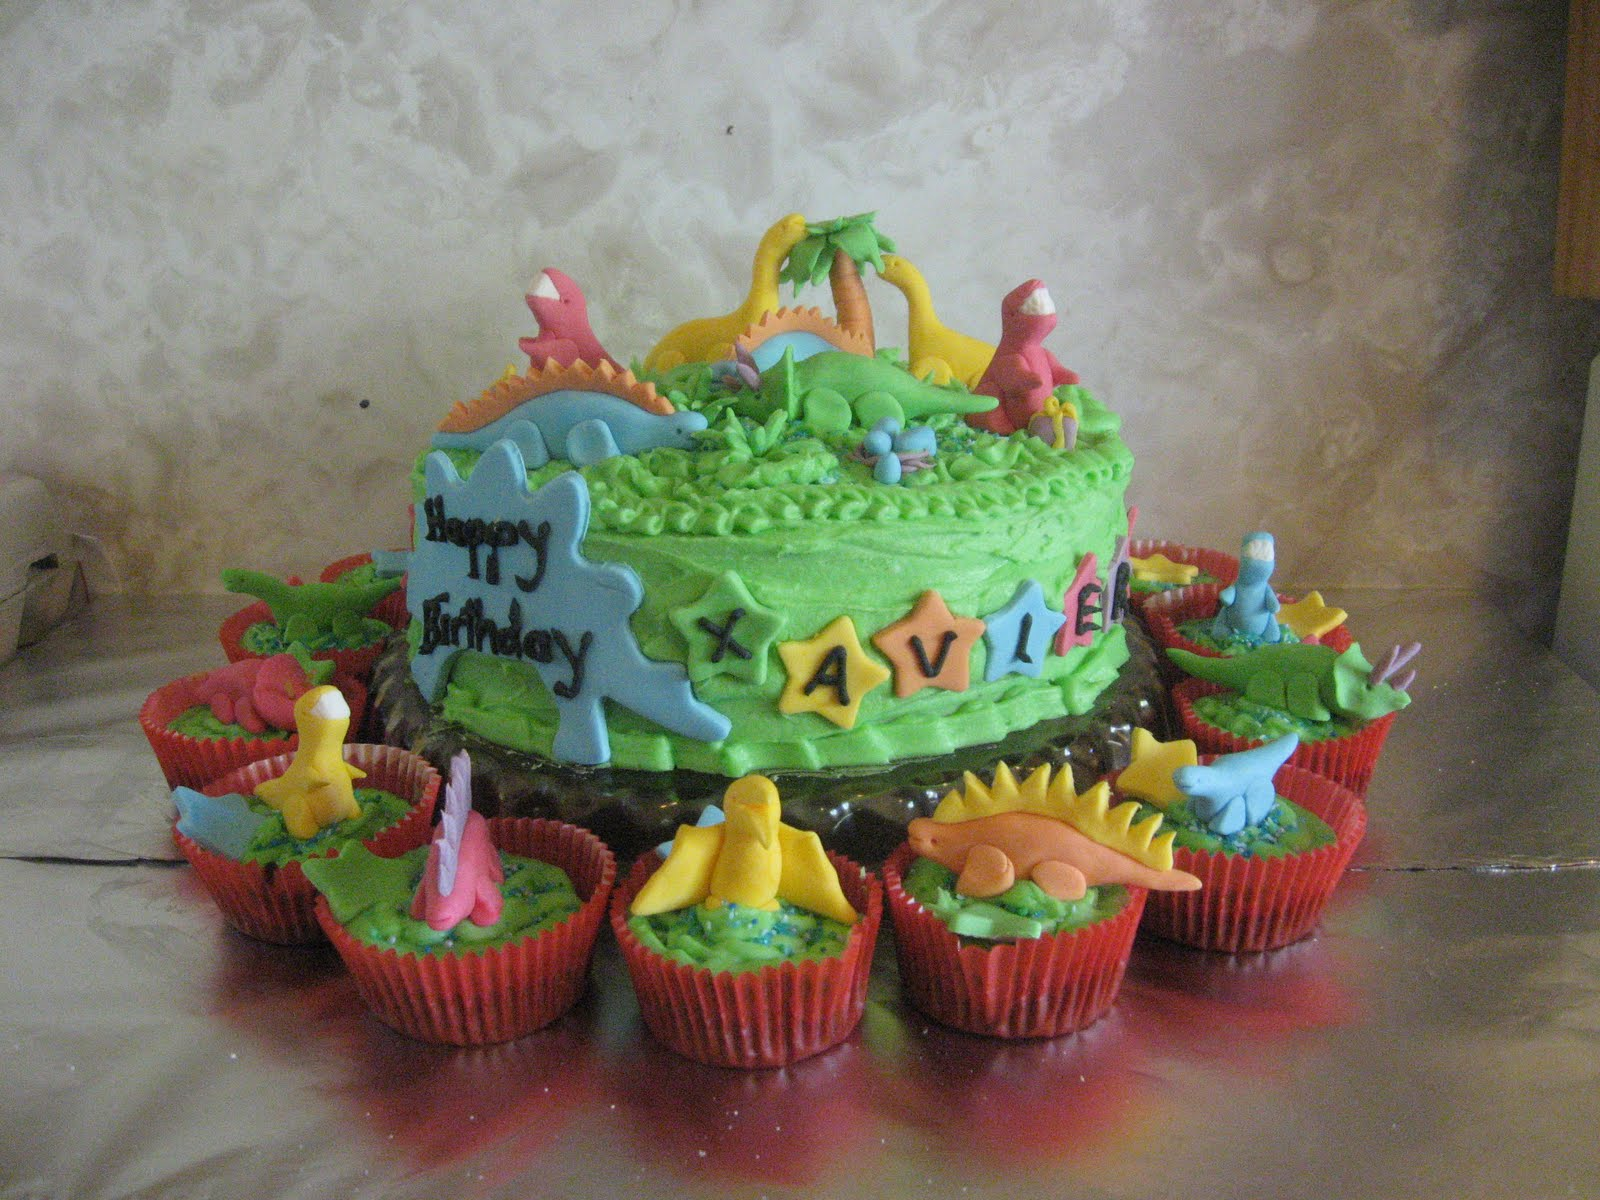 Dinosaur Cake Decorations Nz : 1000+ images about Dino party on Pinterest Dinosaur ...